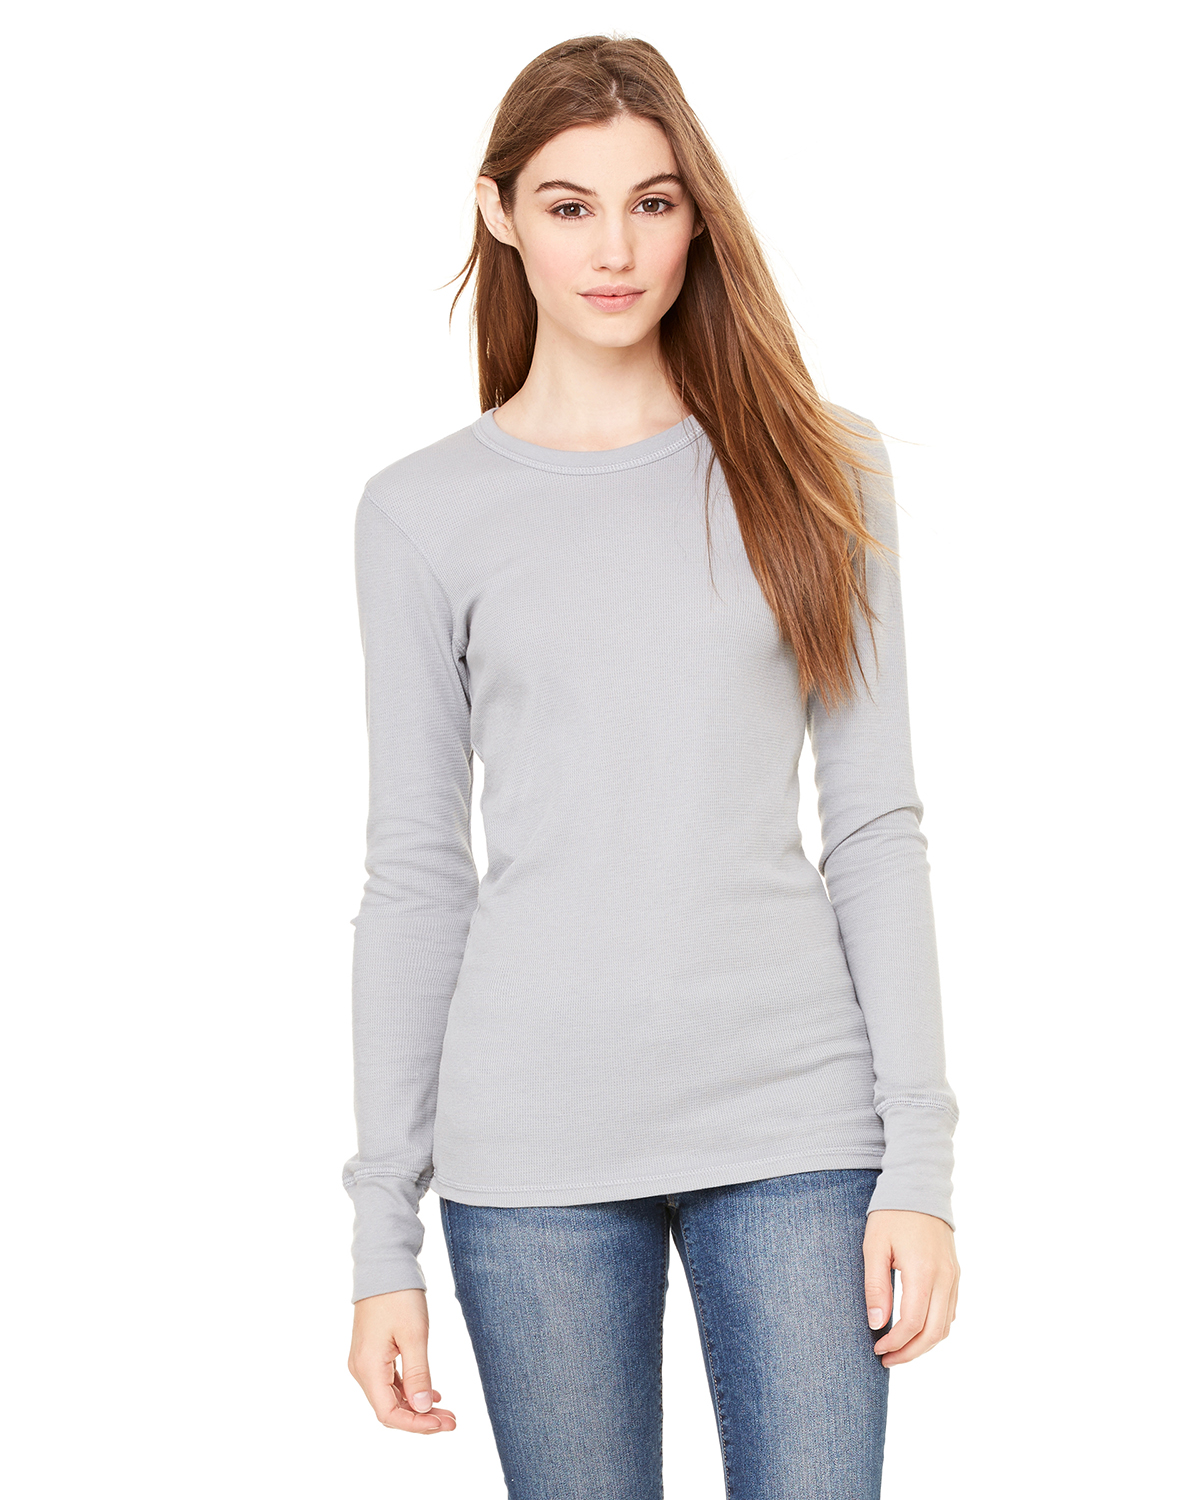 Bella B8500  Women's Long-Sleeve Irene Thermal Shirt